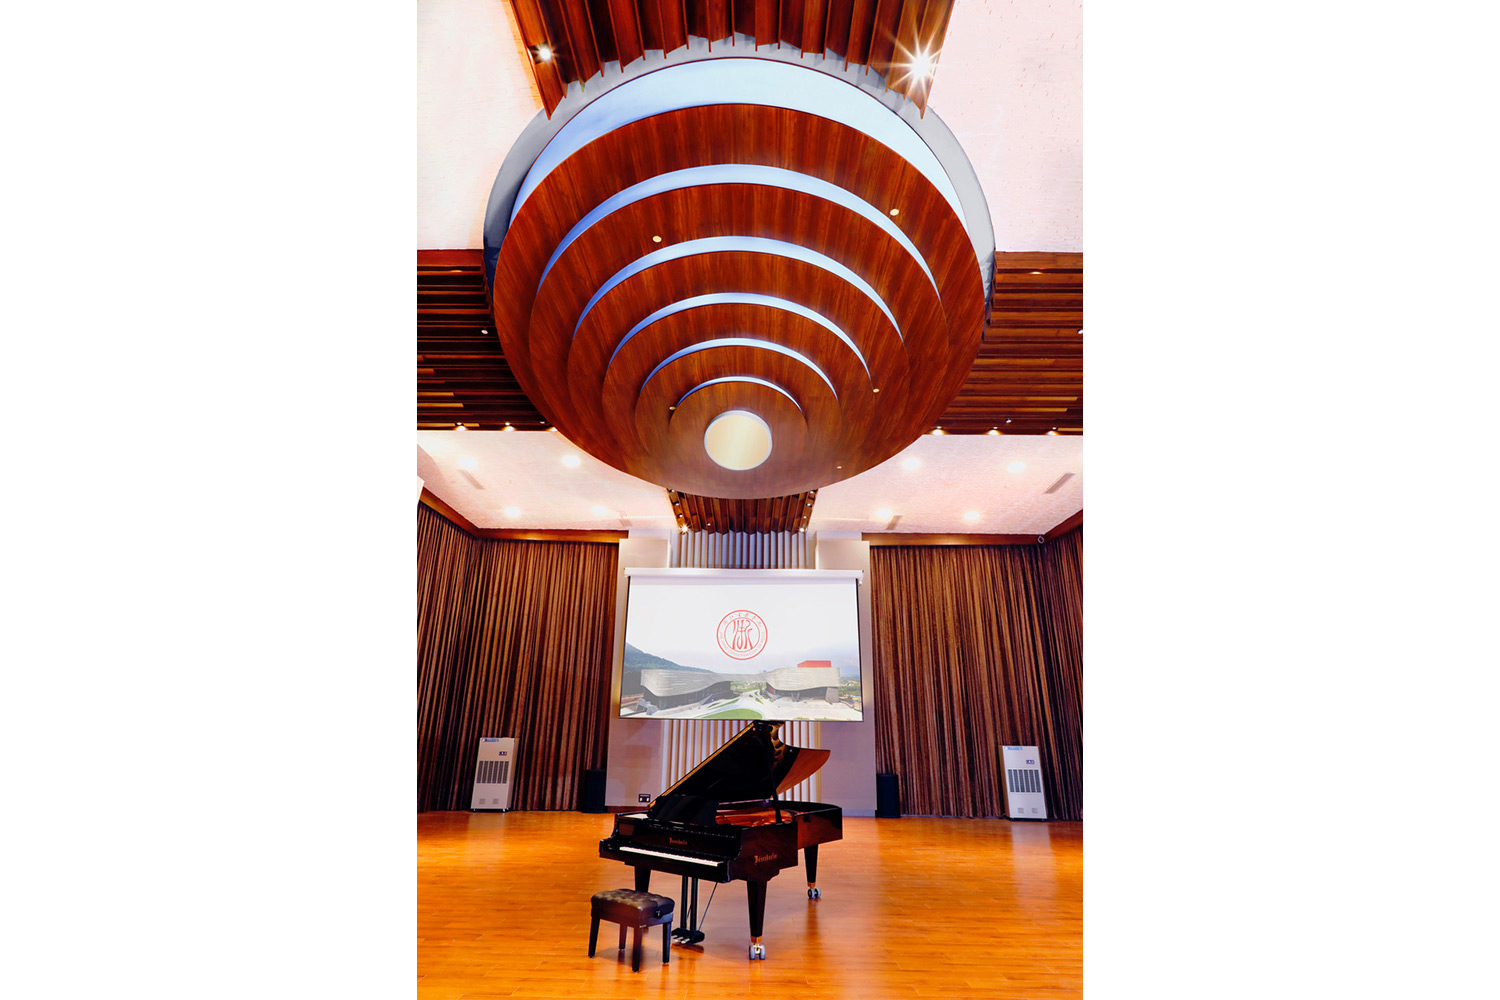 Zhejiang Conservatory of Music in Hangzhou, East China commissioned WSDG to create an important addition to this extraordinary institution, a 21st Century Music Production & Education Complex. Featuring piano.